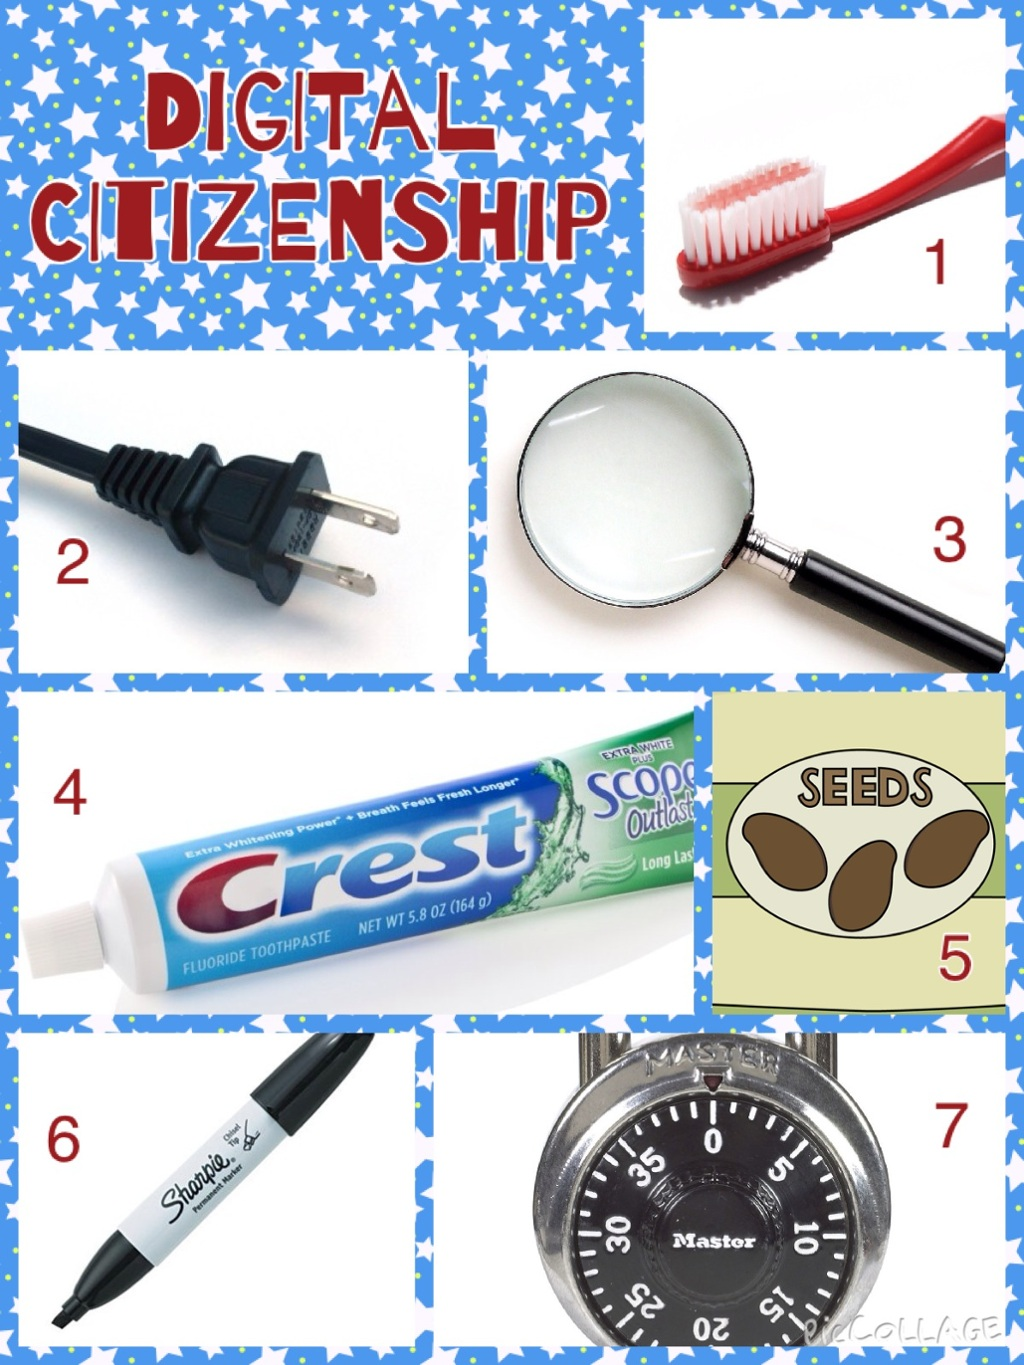 Digital Citizenship Series Circuit Thinglink Survival Kit By K Lowden